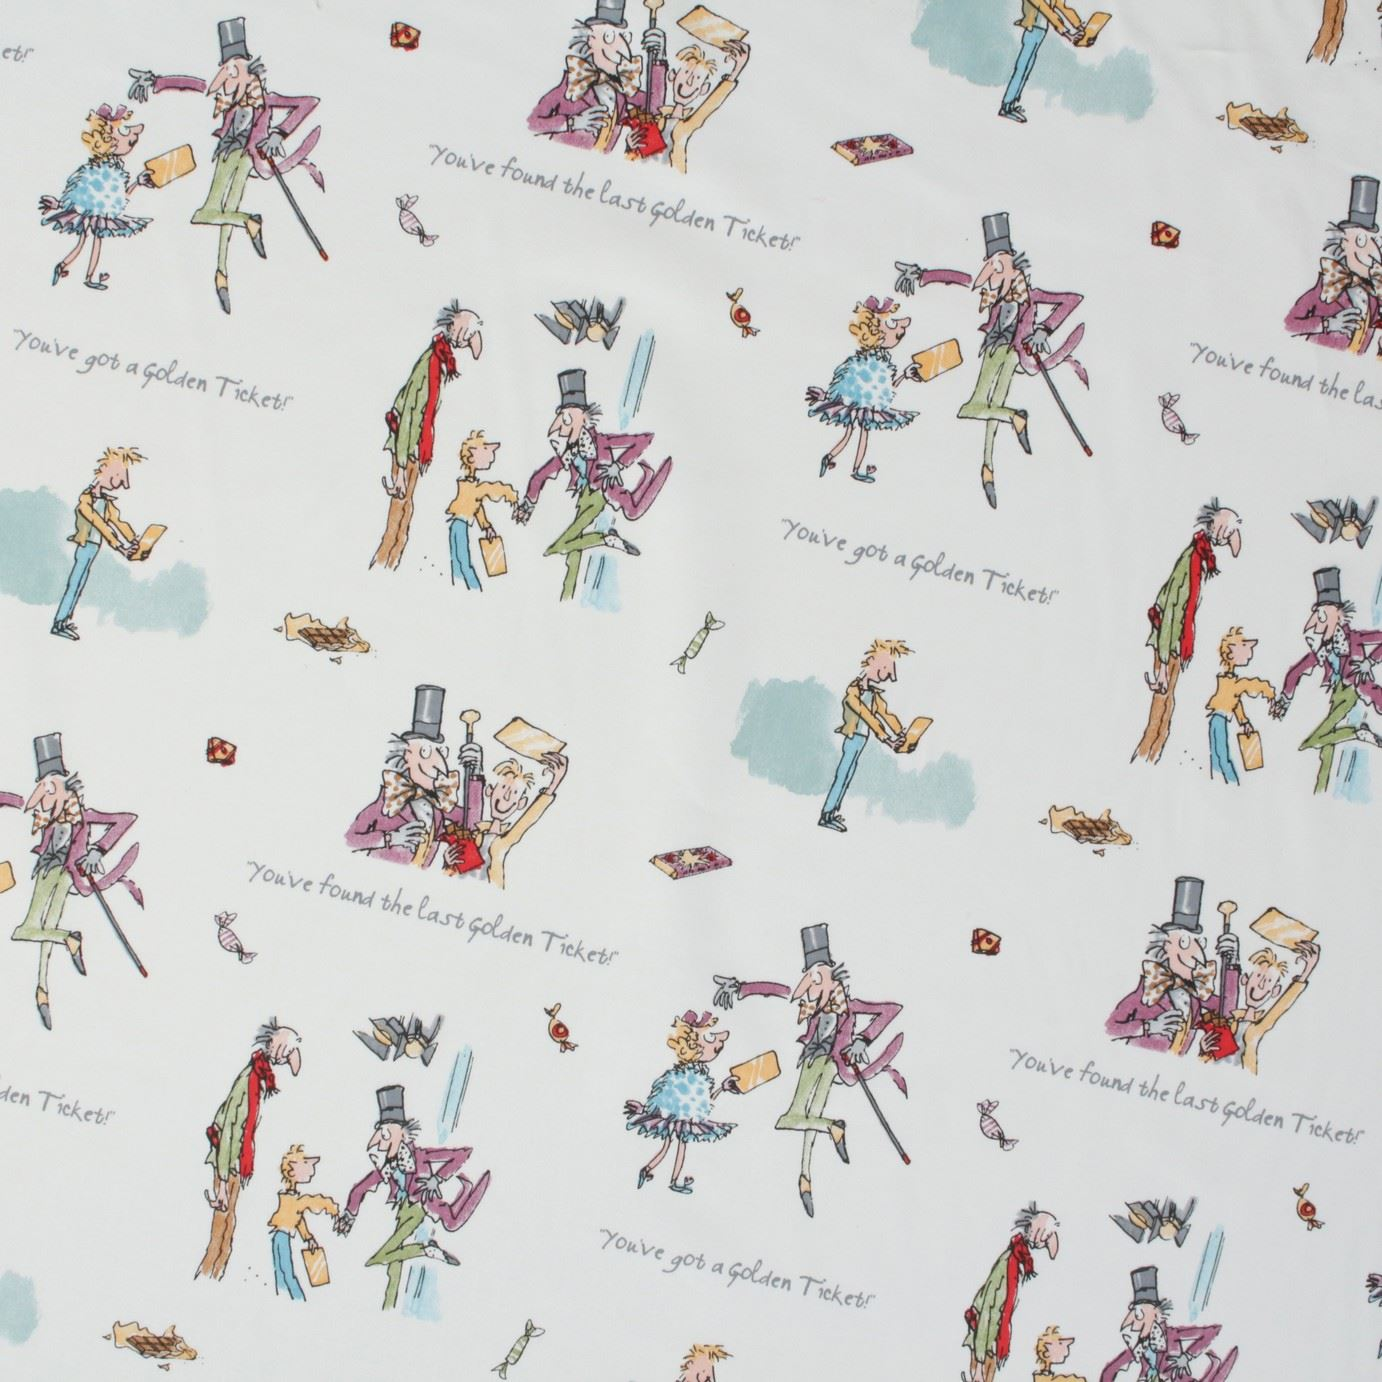 Roald dahl quentin blake art story quilting curtain craft for Unique childrens fabric